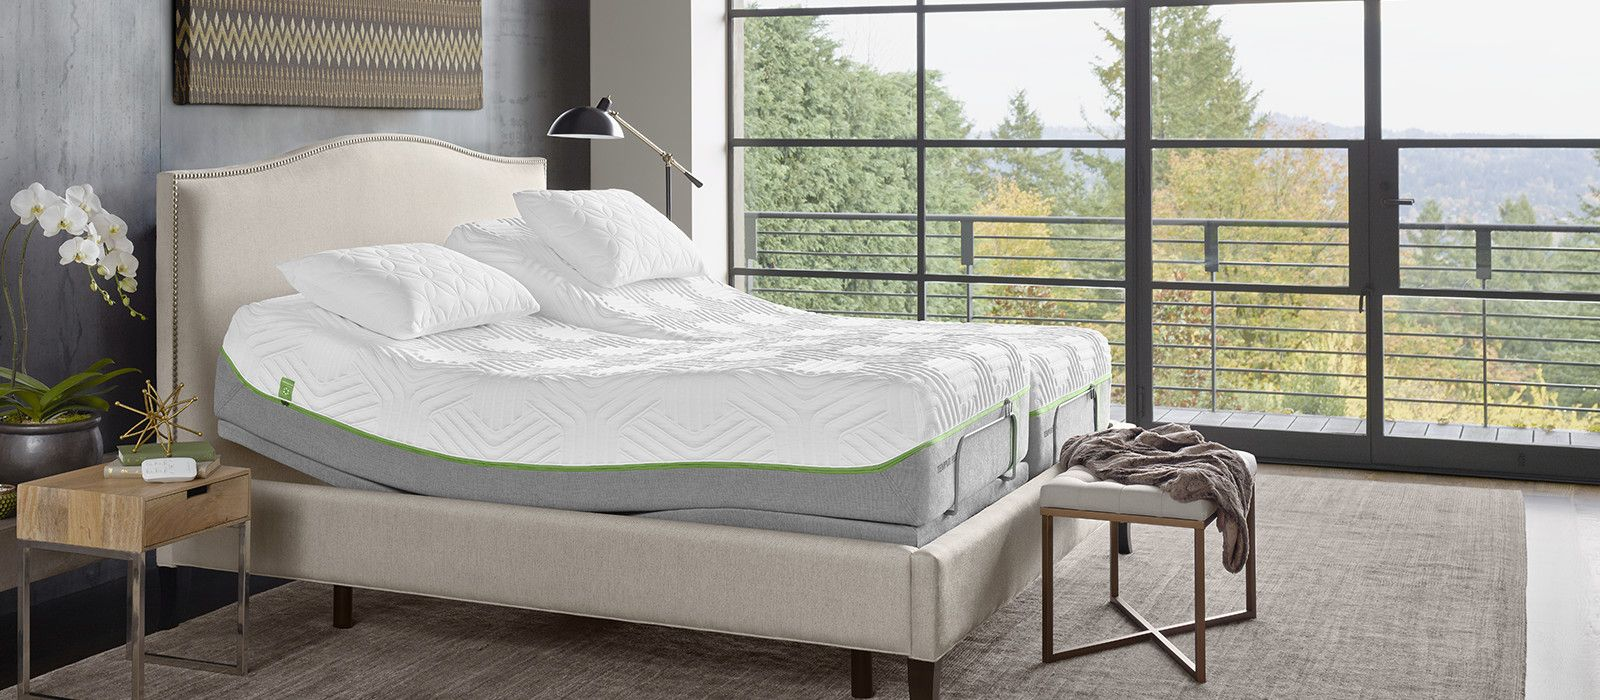 Tempur Pedic Adjustable Foundation King Size Adjustable